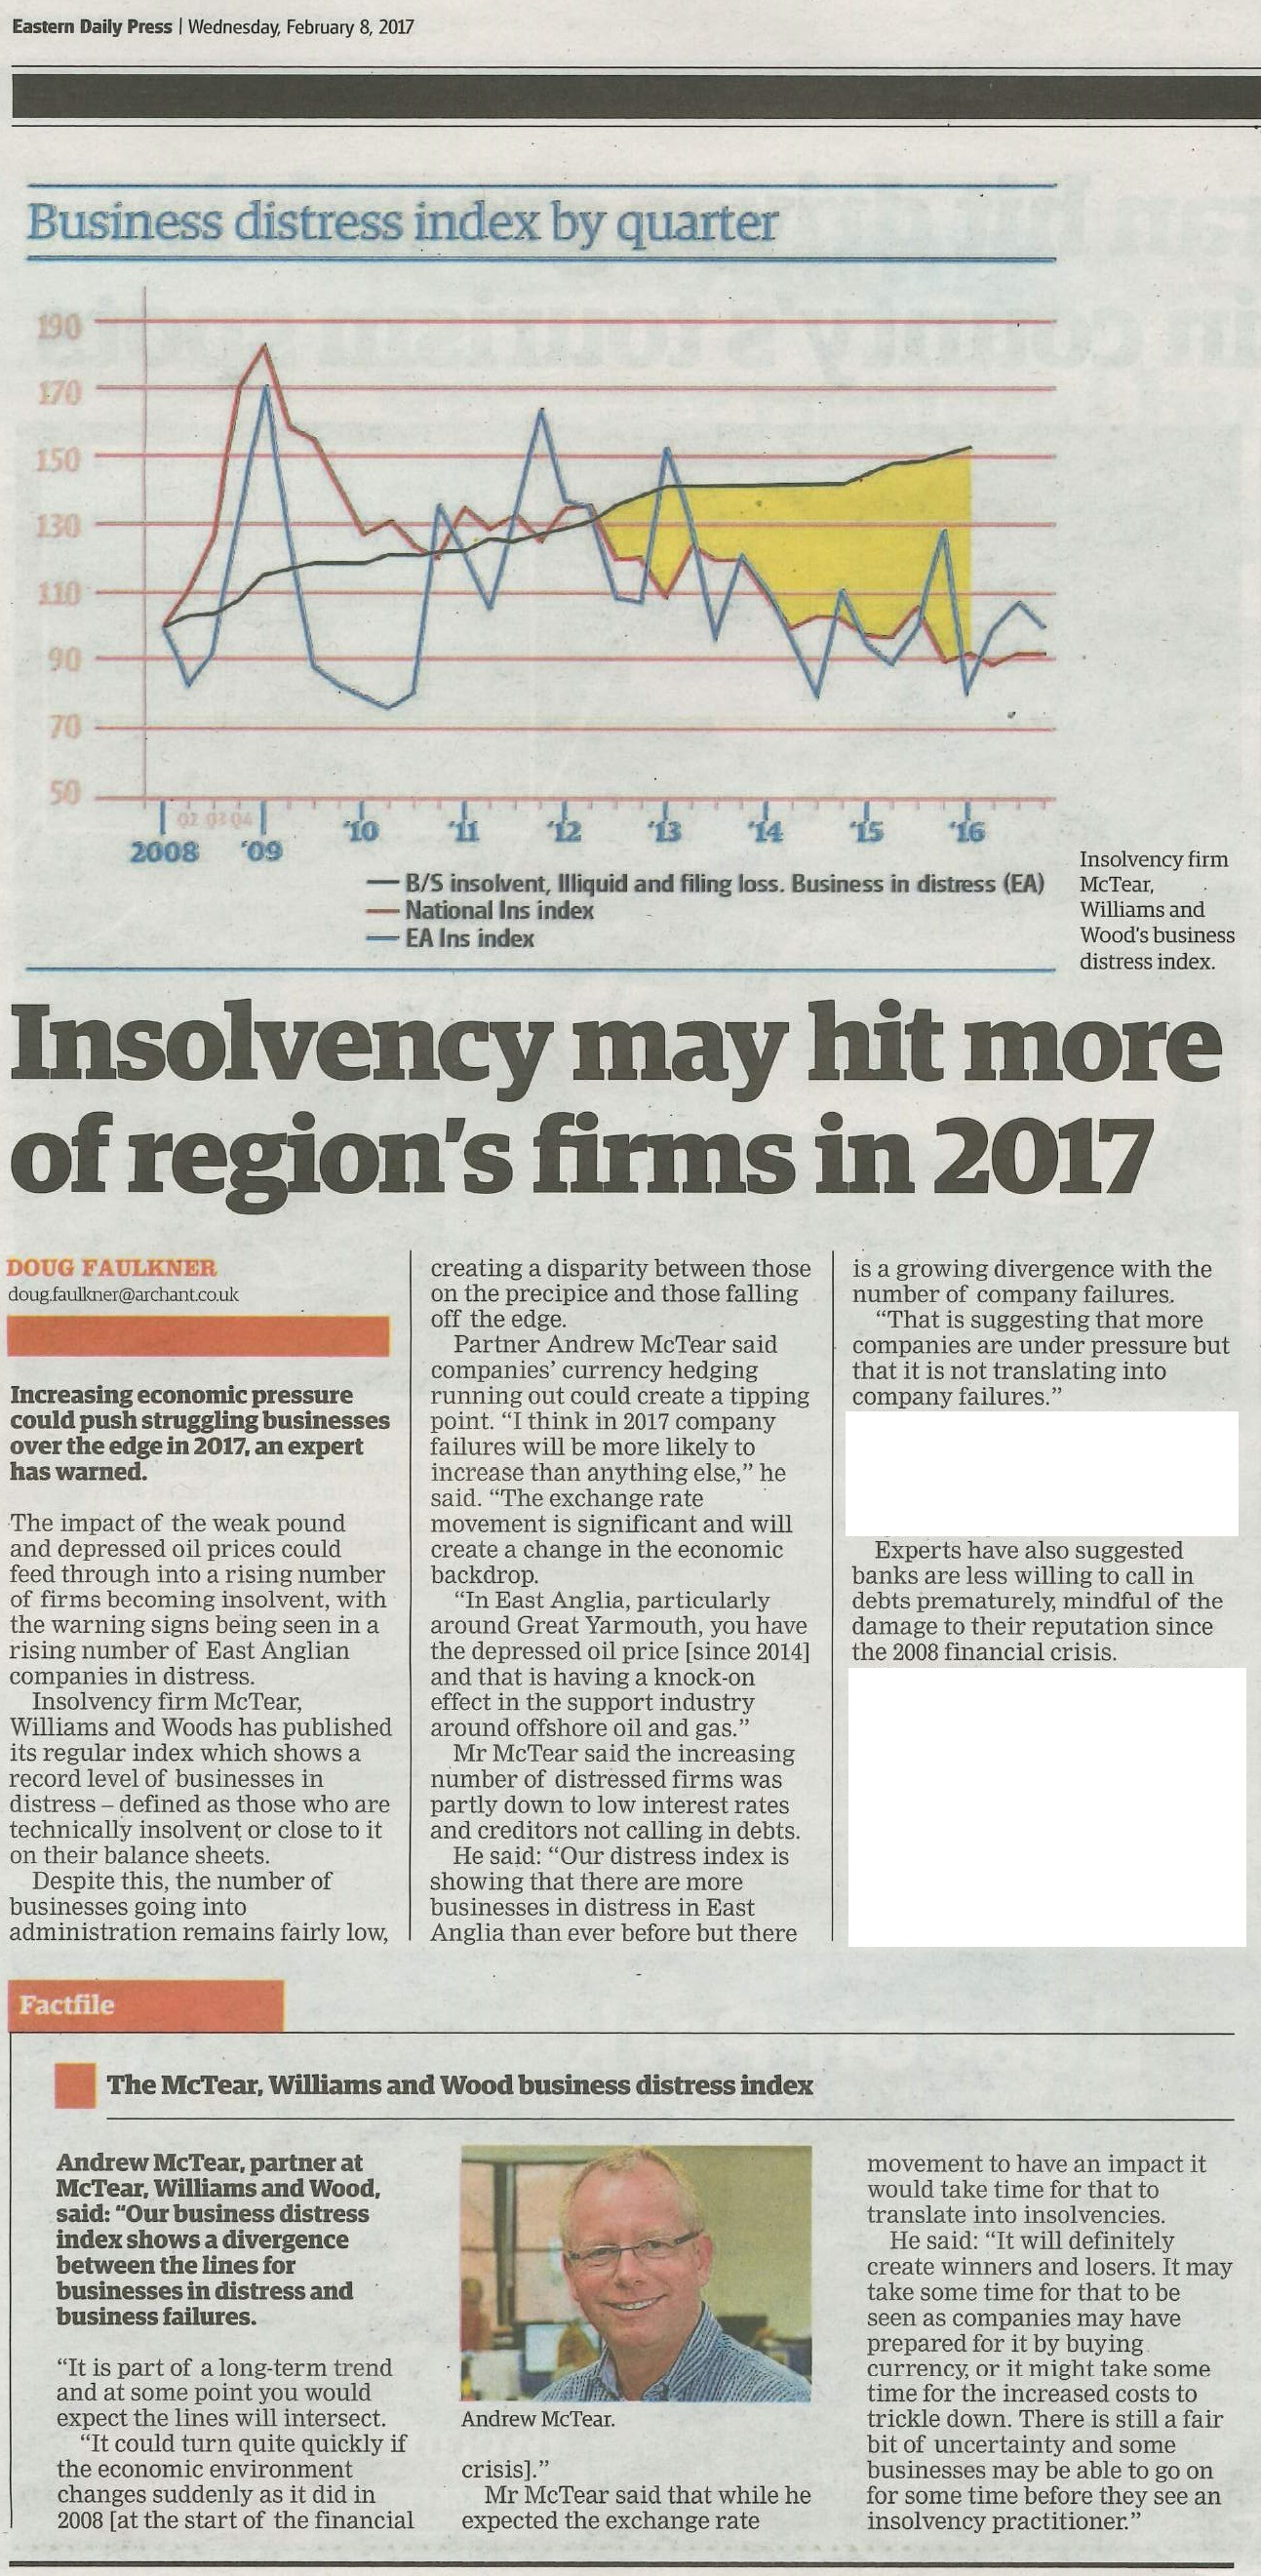 Eastern Daily Press Article with Business Distress Index